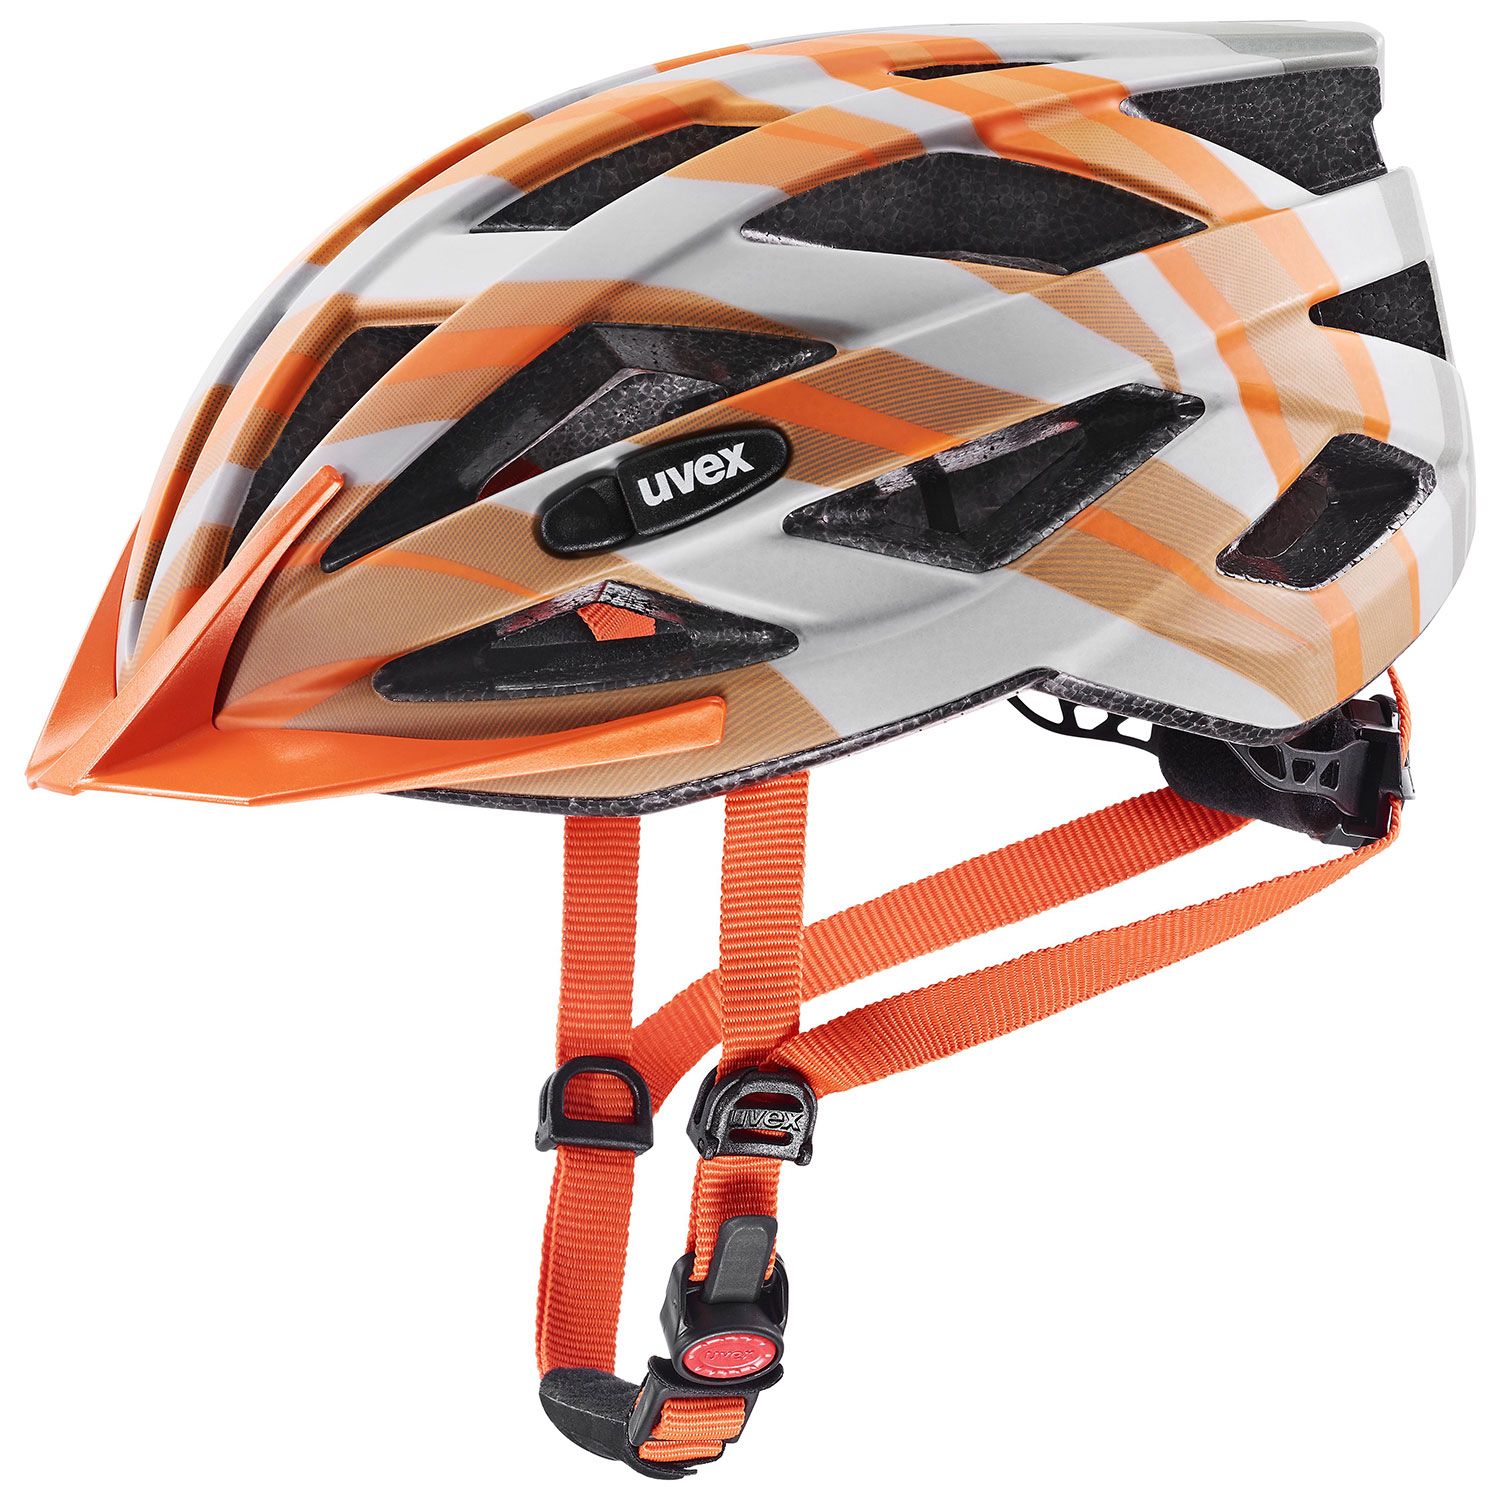 2021 UVEX HELMA AIR WING CC, GREY - ORANGE MAT 52-57